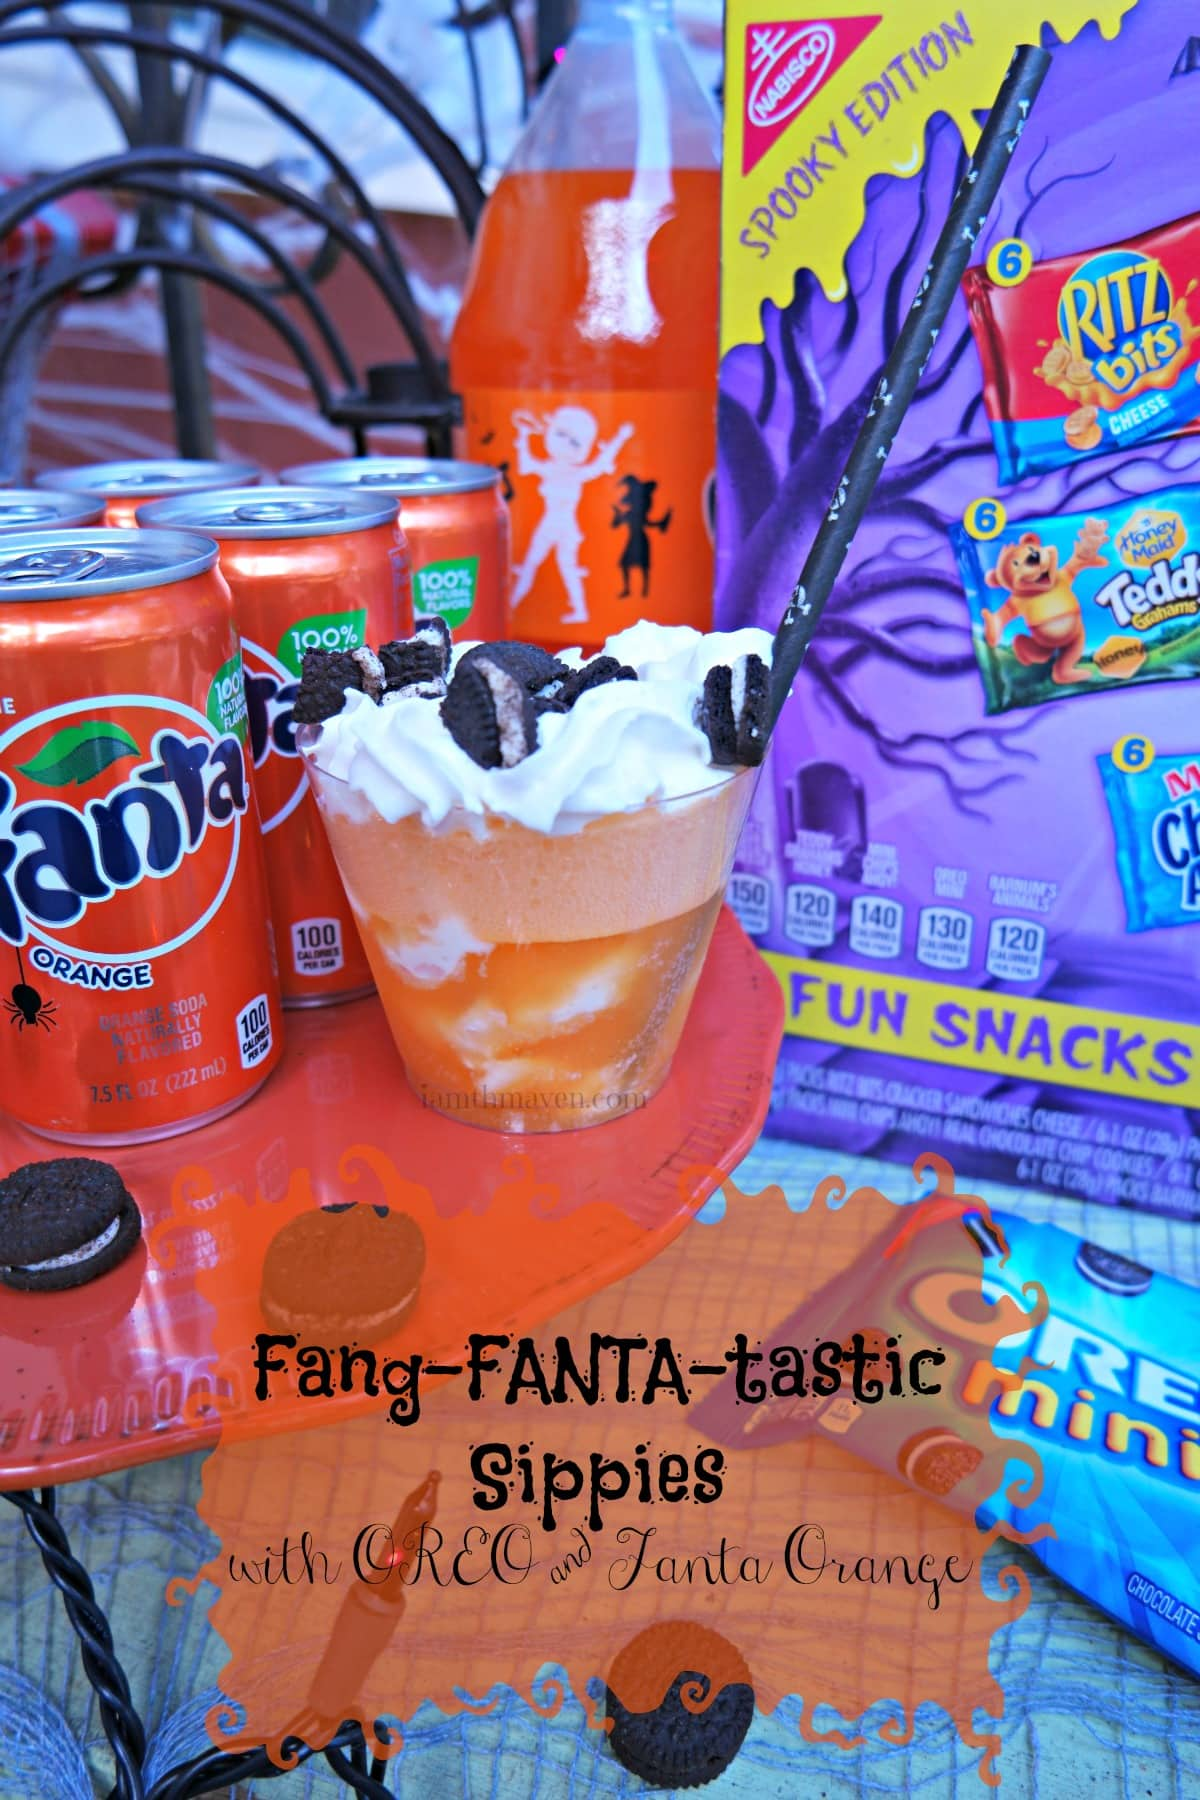 Fang-FANTA-tastic Sippies with OREO and Fanta Orange #SpookySnacks AD